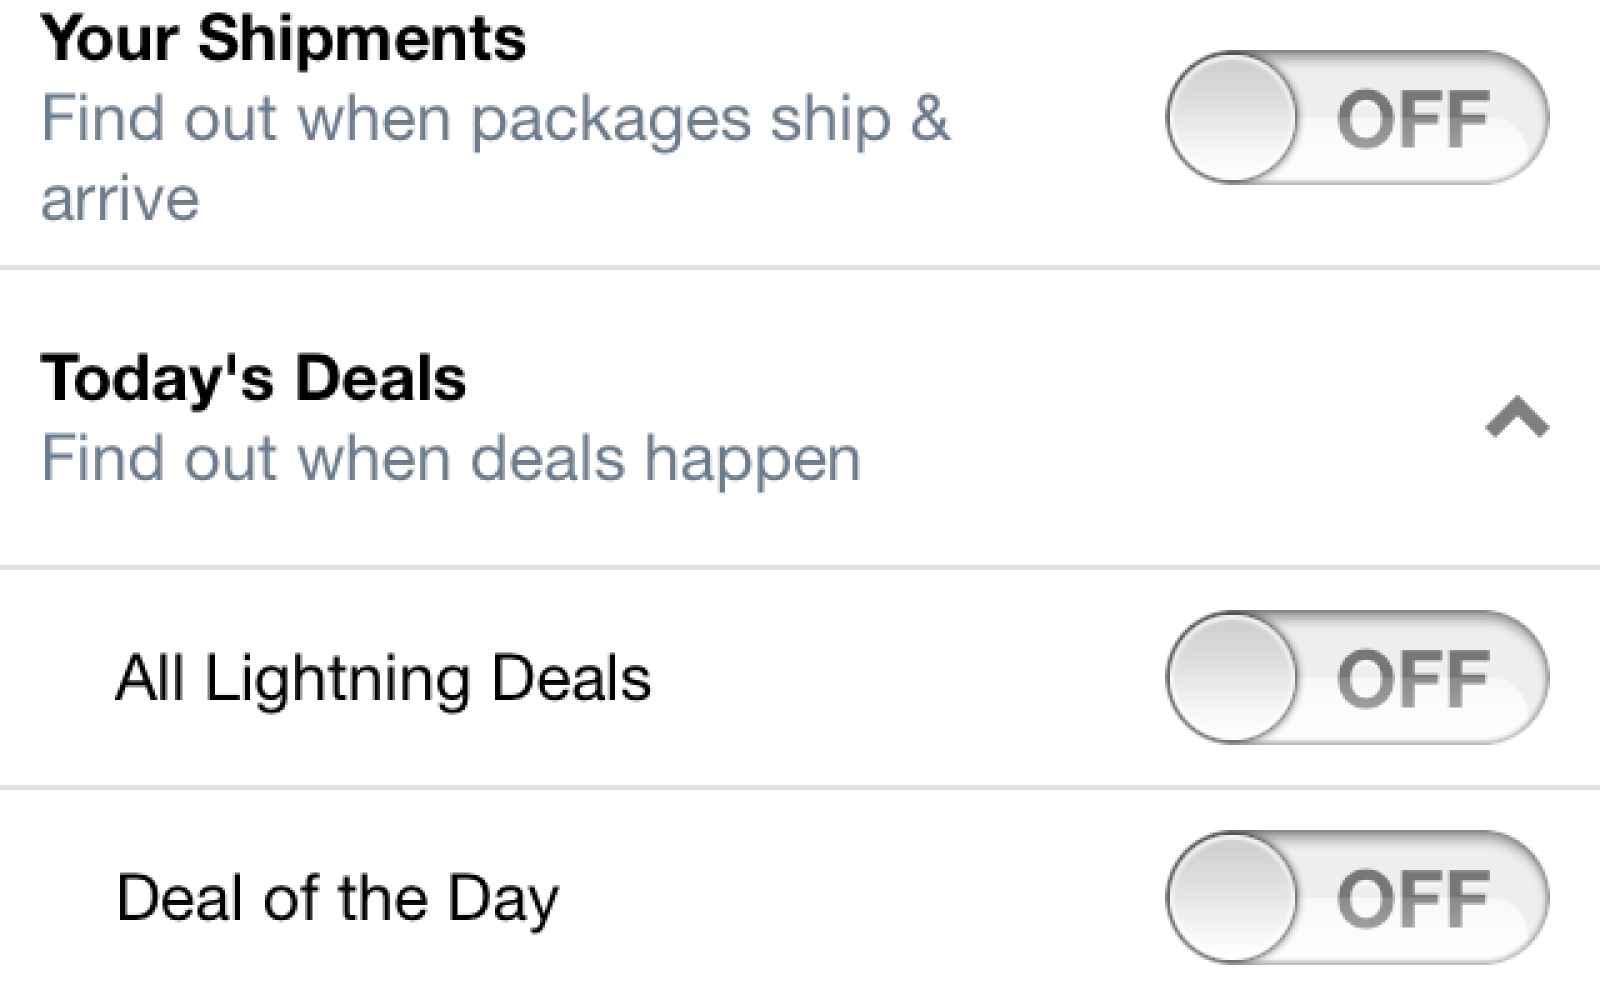 Amazon Mobile for iOS adds push notifications for shipments, deals and subscription activity